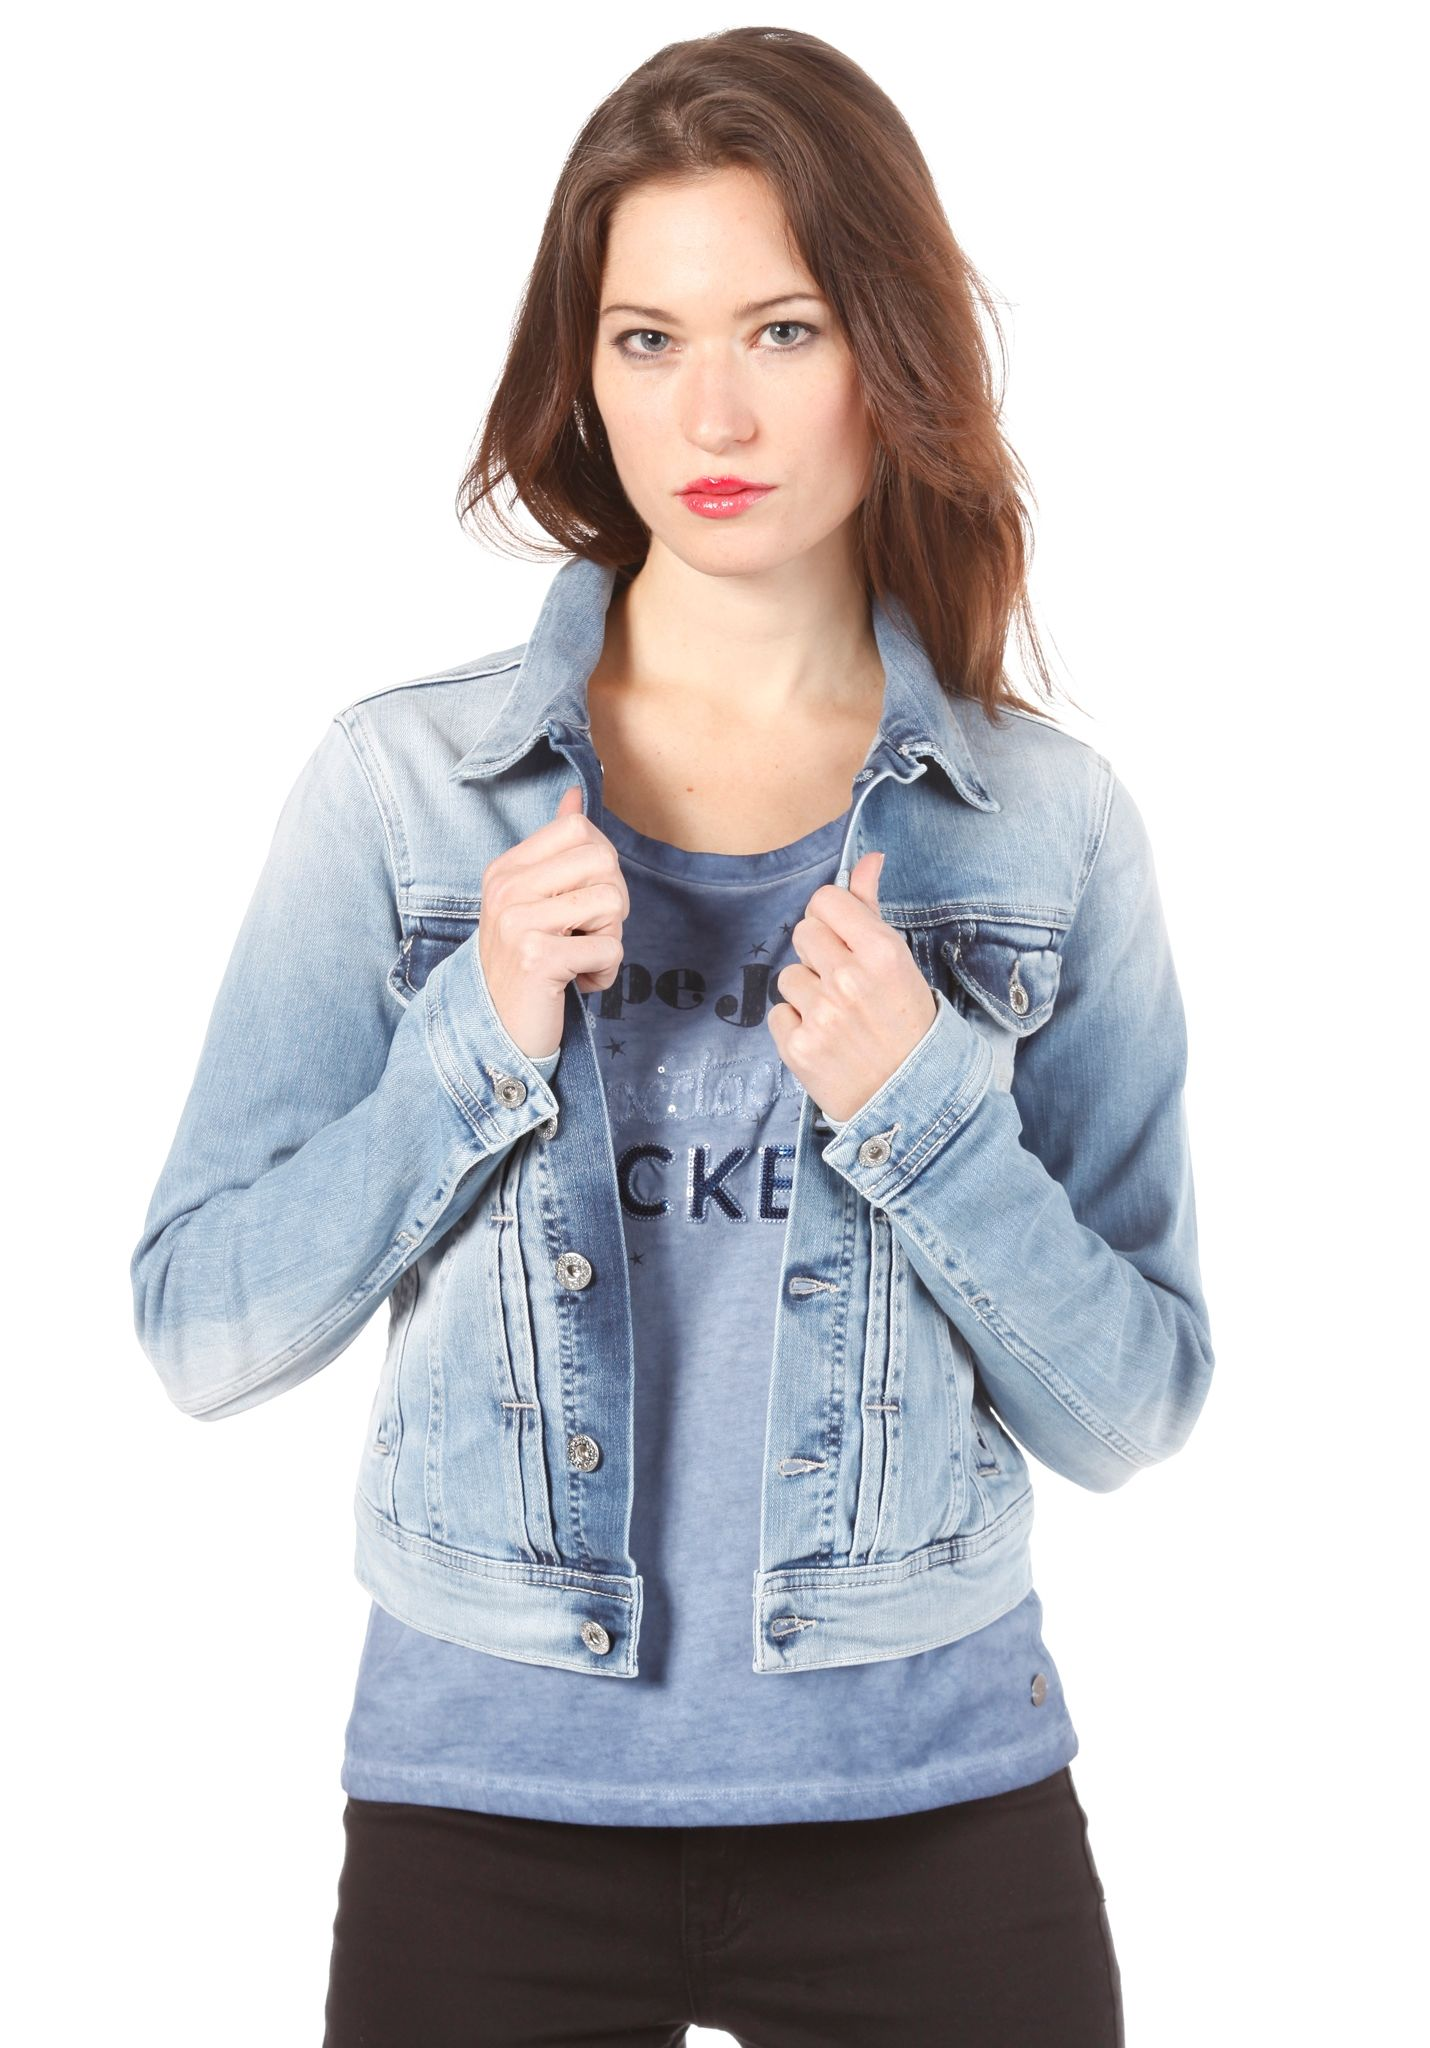 478d5a5daf PEPE JEANS Mikas jacket - Jacket for Women - Blue - Planet Sports